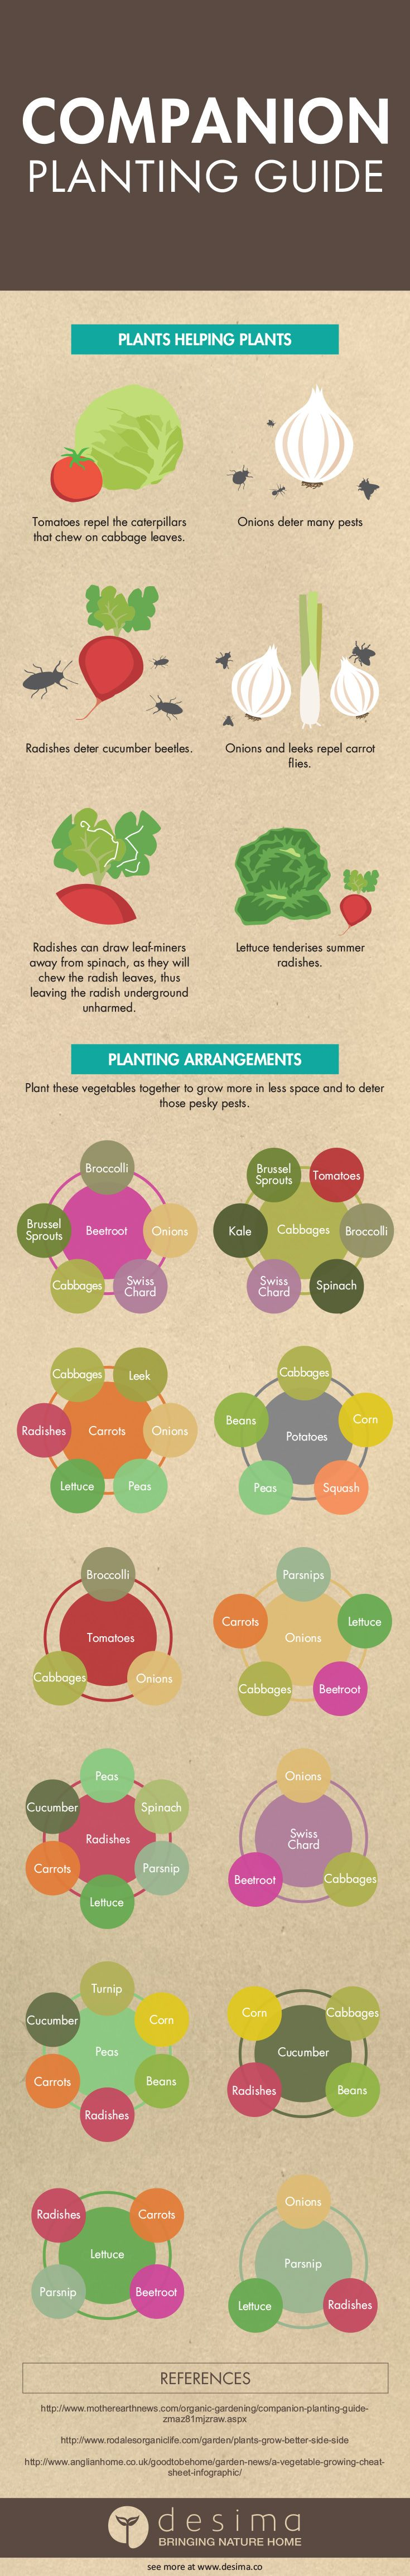 Companion planting guide infographic                                                                                                                                                      More